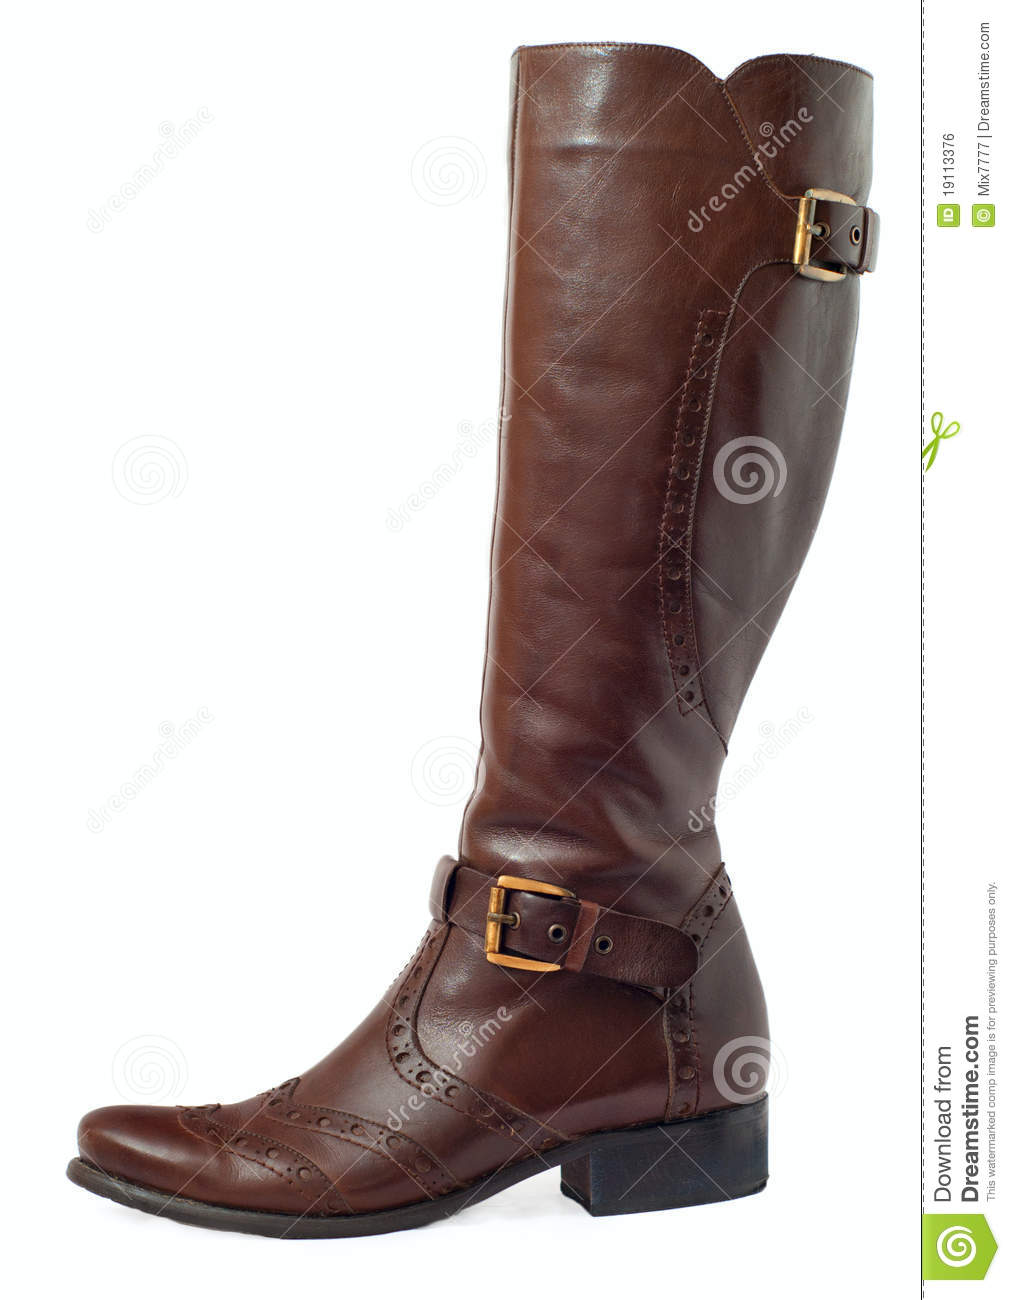 Leather Womens Boots fc5xodPK